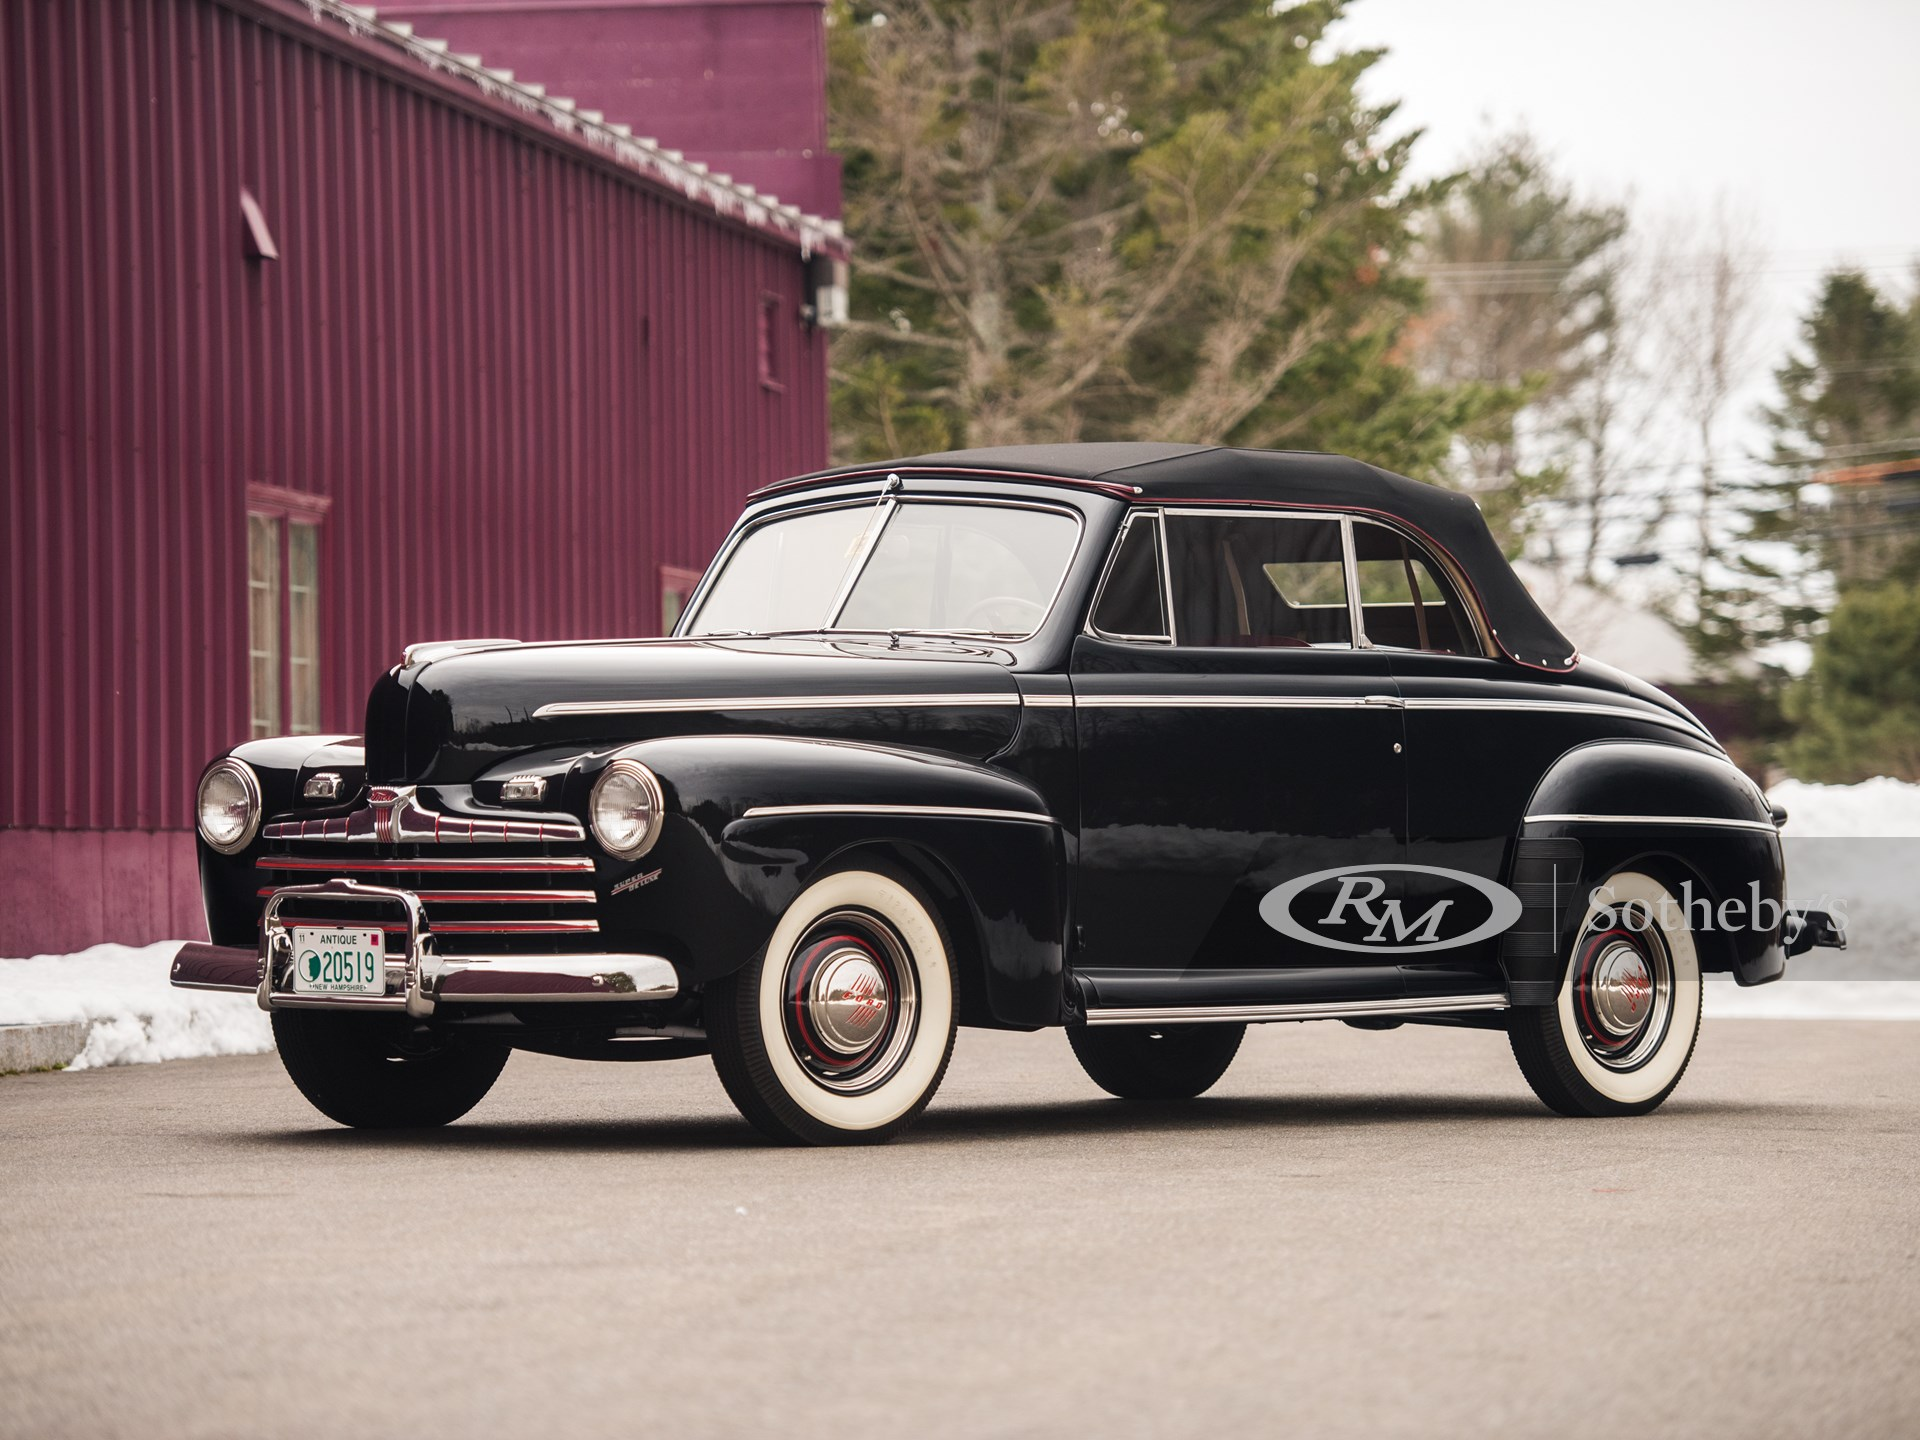 1946 Ford Super Deluxe Convertible The Dingman Collection Rm Auctions